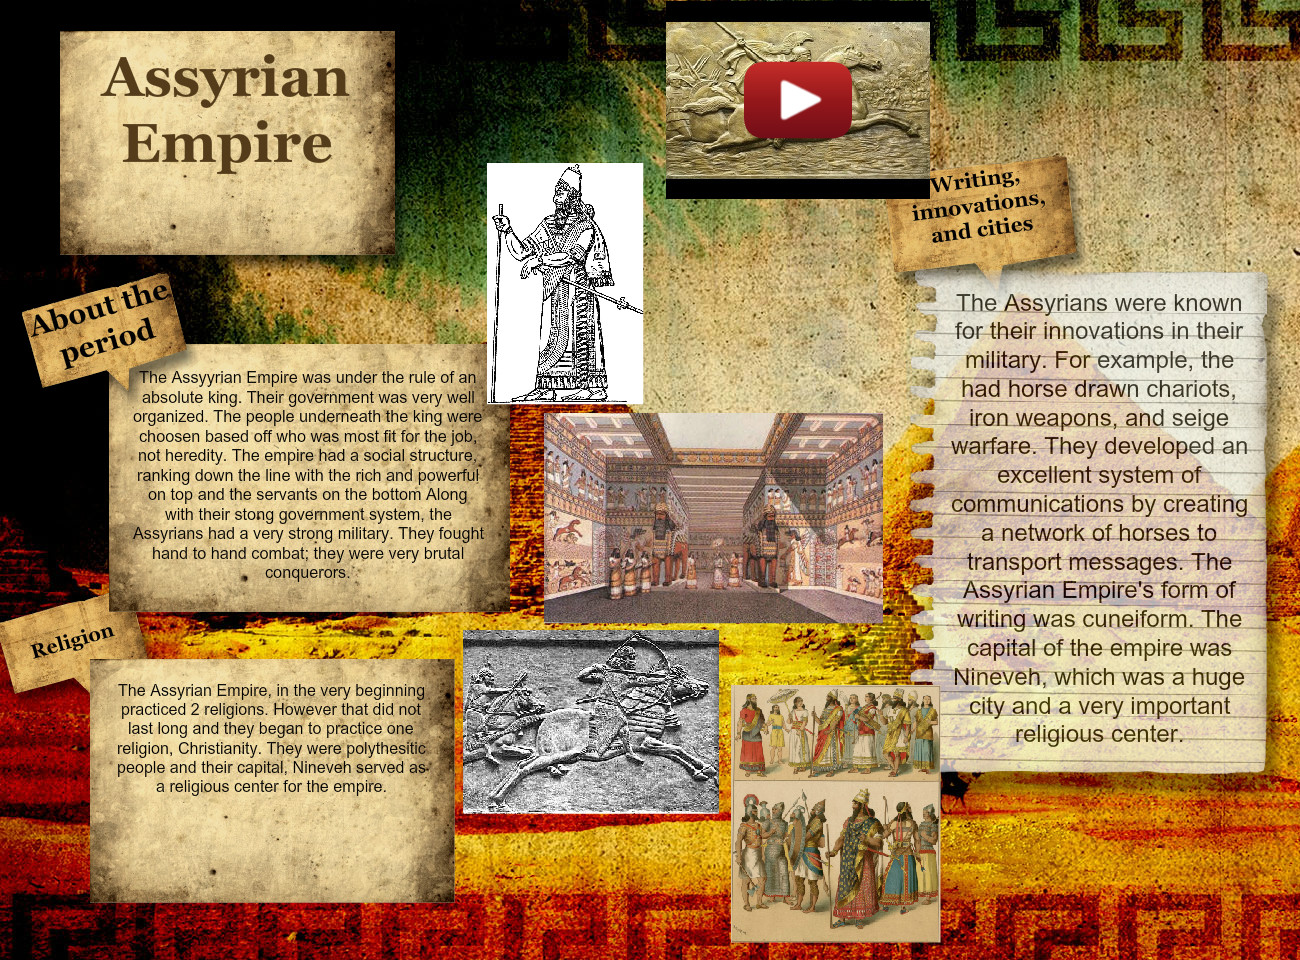 Assyrian Empire